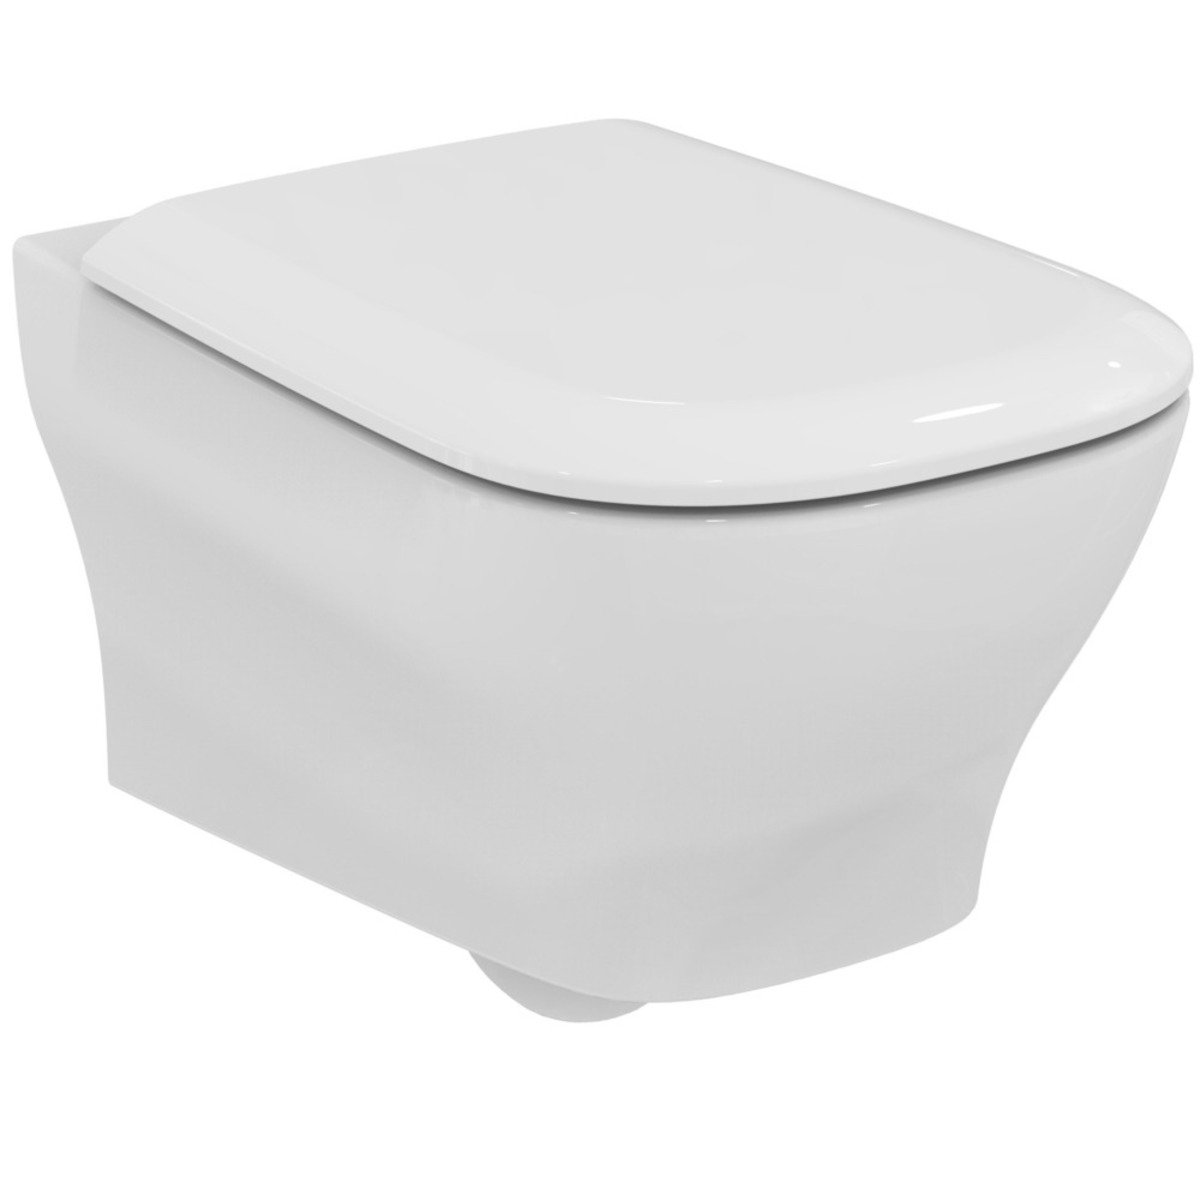 Wc Suspendu Ideal Standard : ideal standard softmood wc suspendu sans bride blanc ~ Pogadajmy.info Styles, Décorations et Voitures